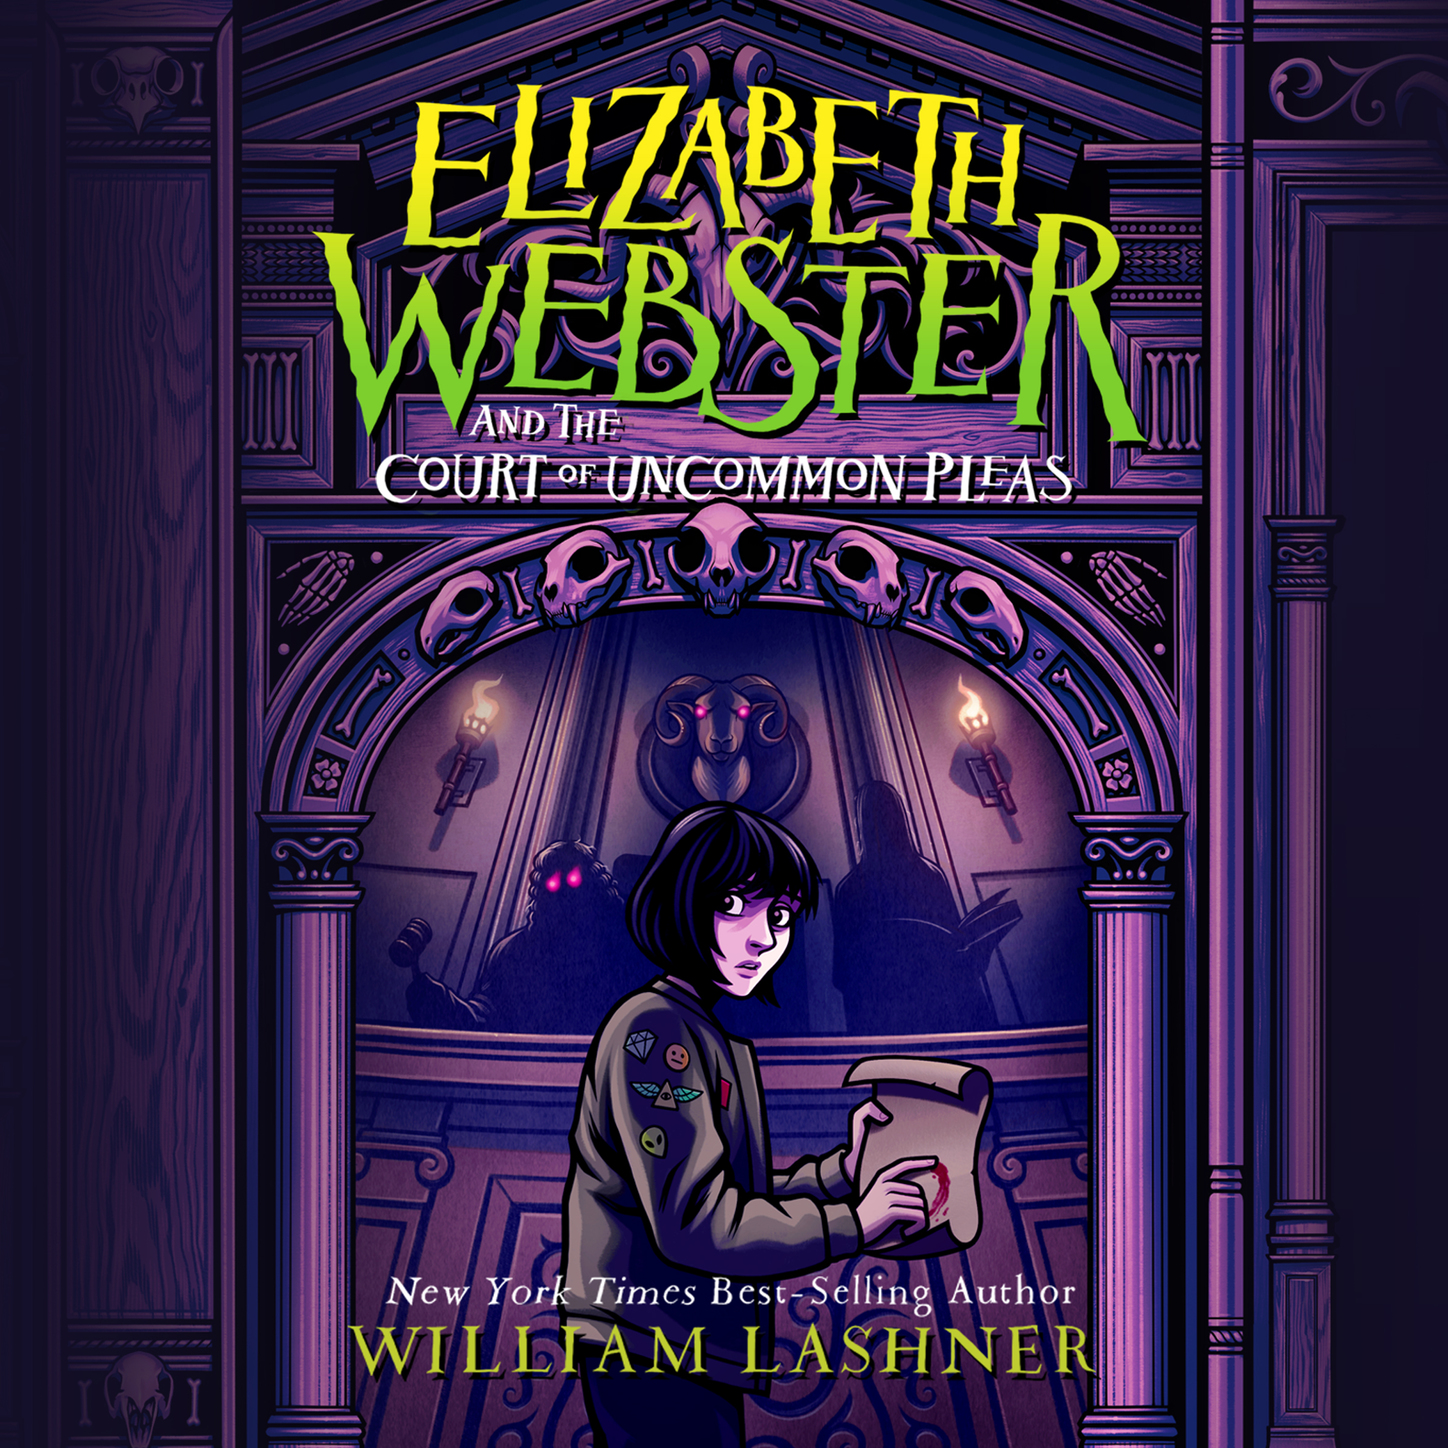 цена на William Lashner Elizabeth Webster and the Court of Uncommon Pleas - Elizabeth Webster, Book 1 (Unabridged)